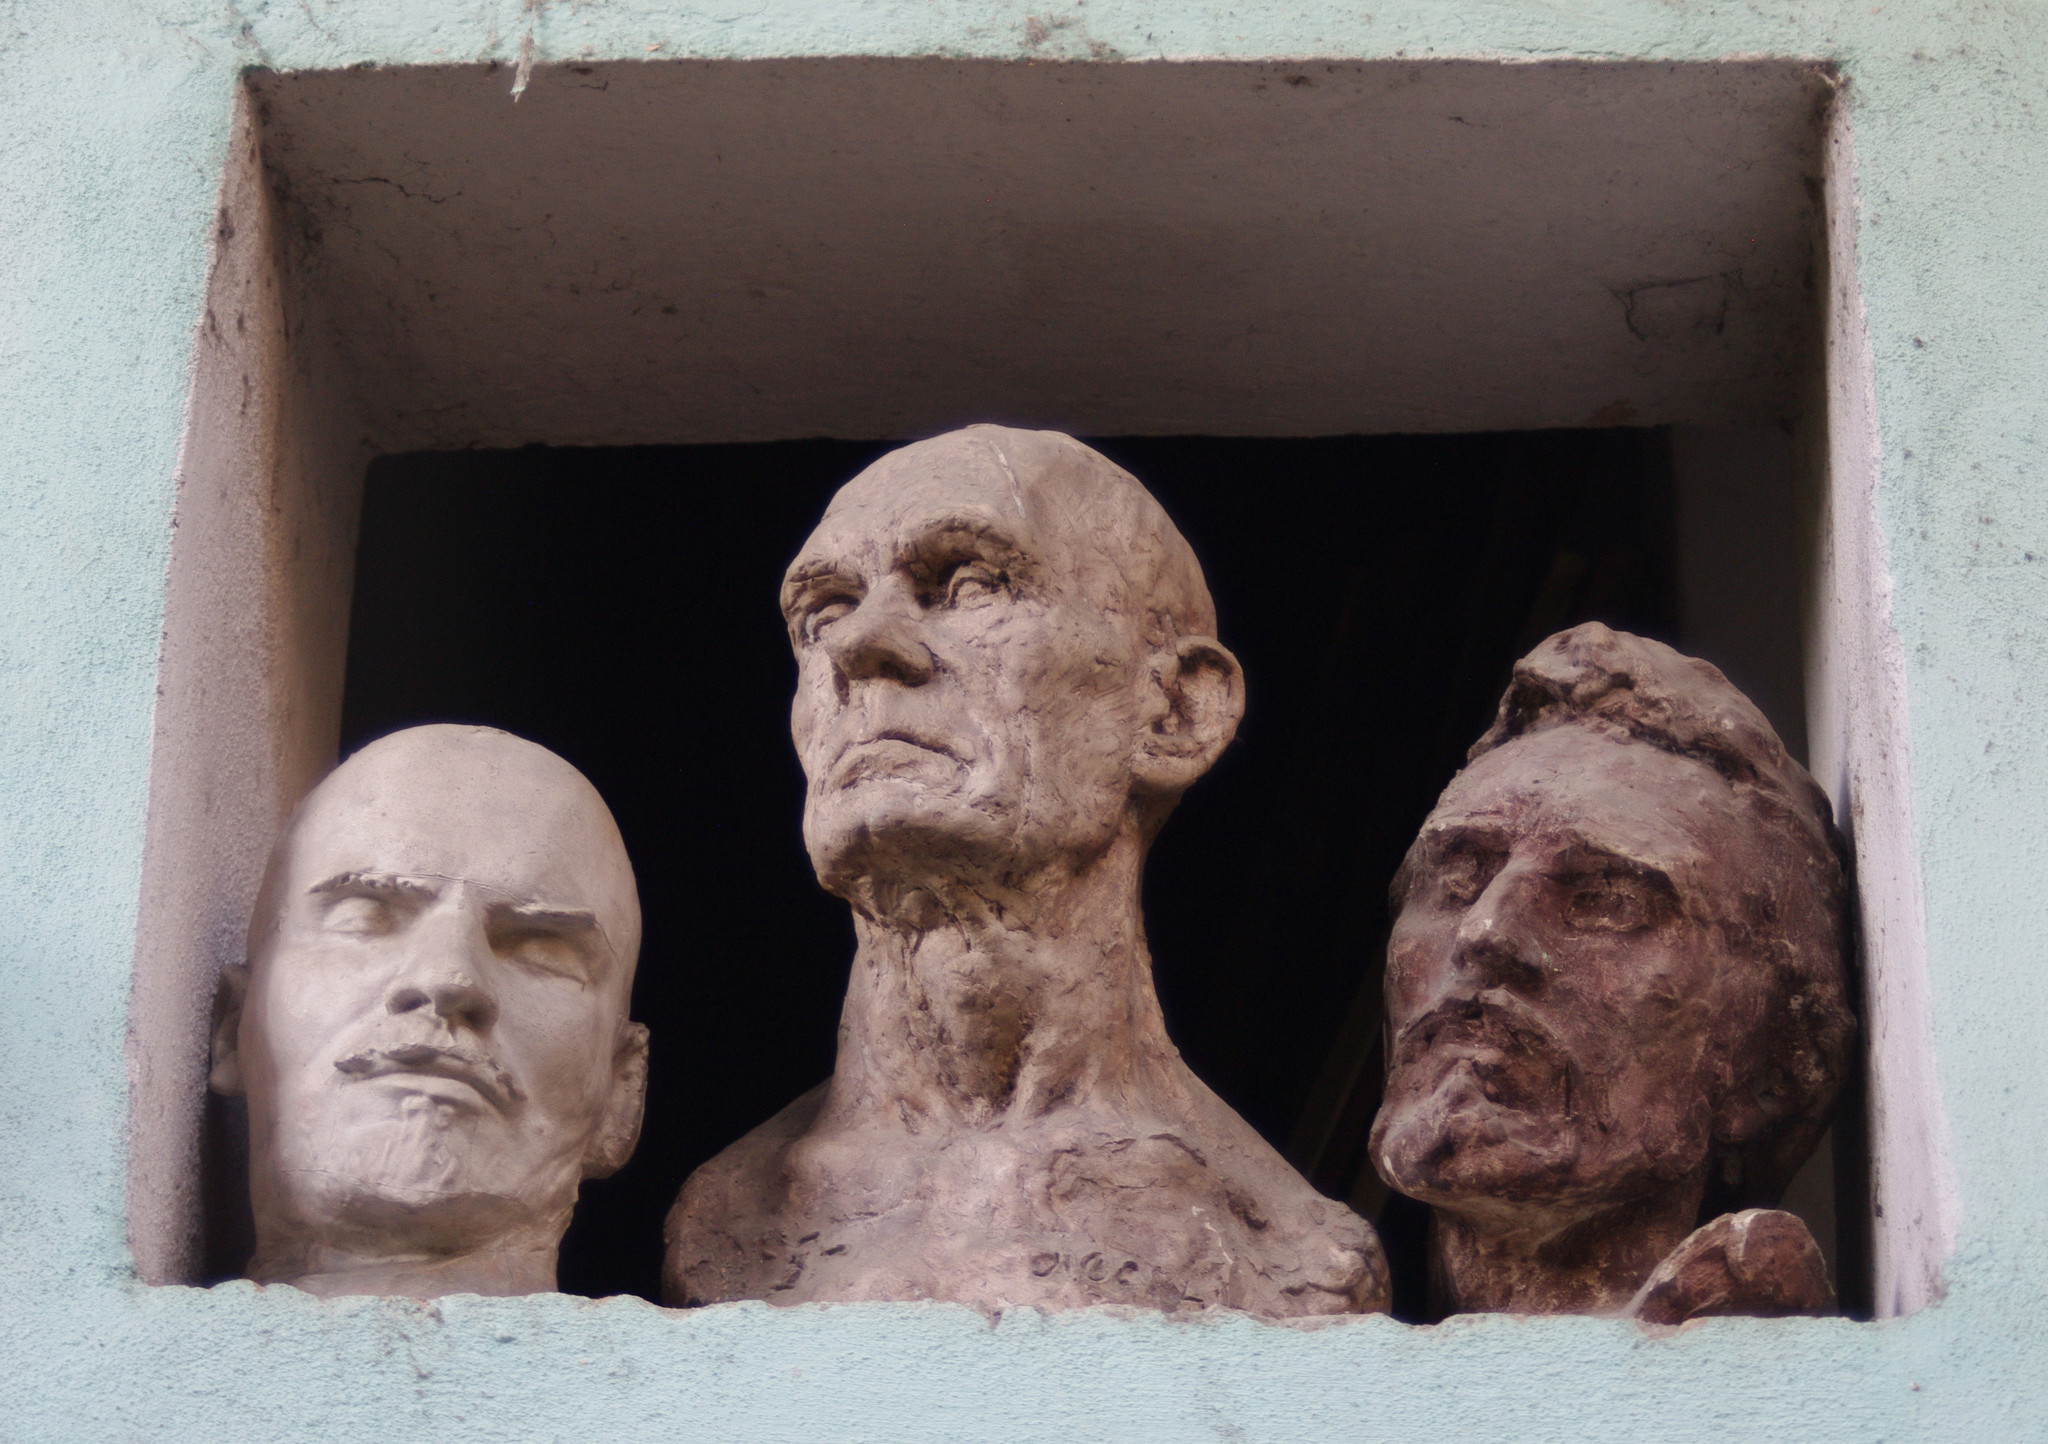 Busts at the workshop of Cuban artist Alberto Lescay.